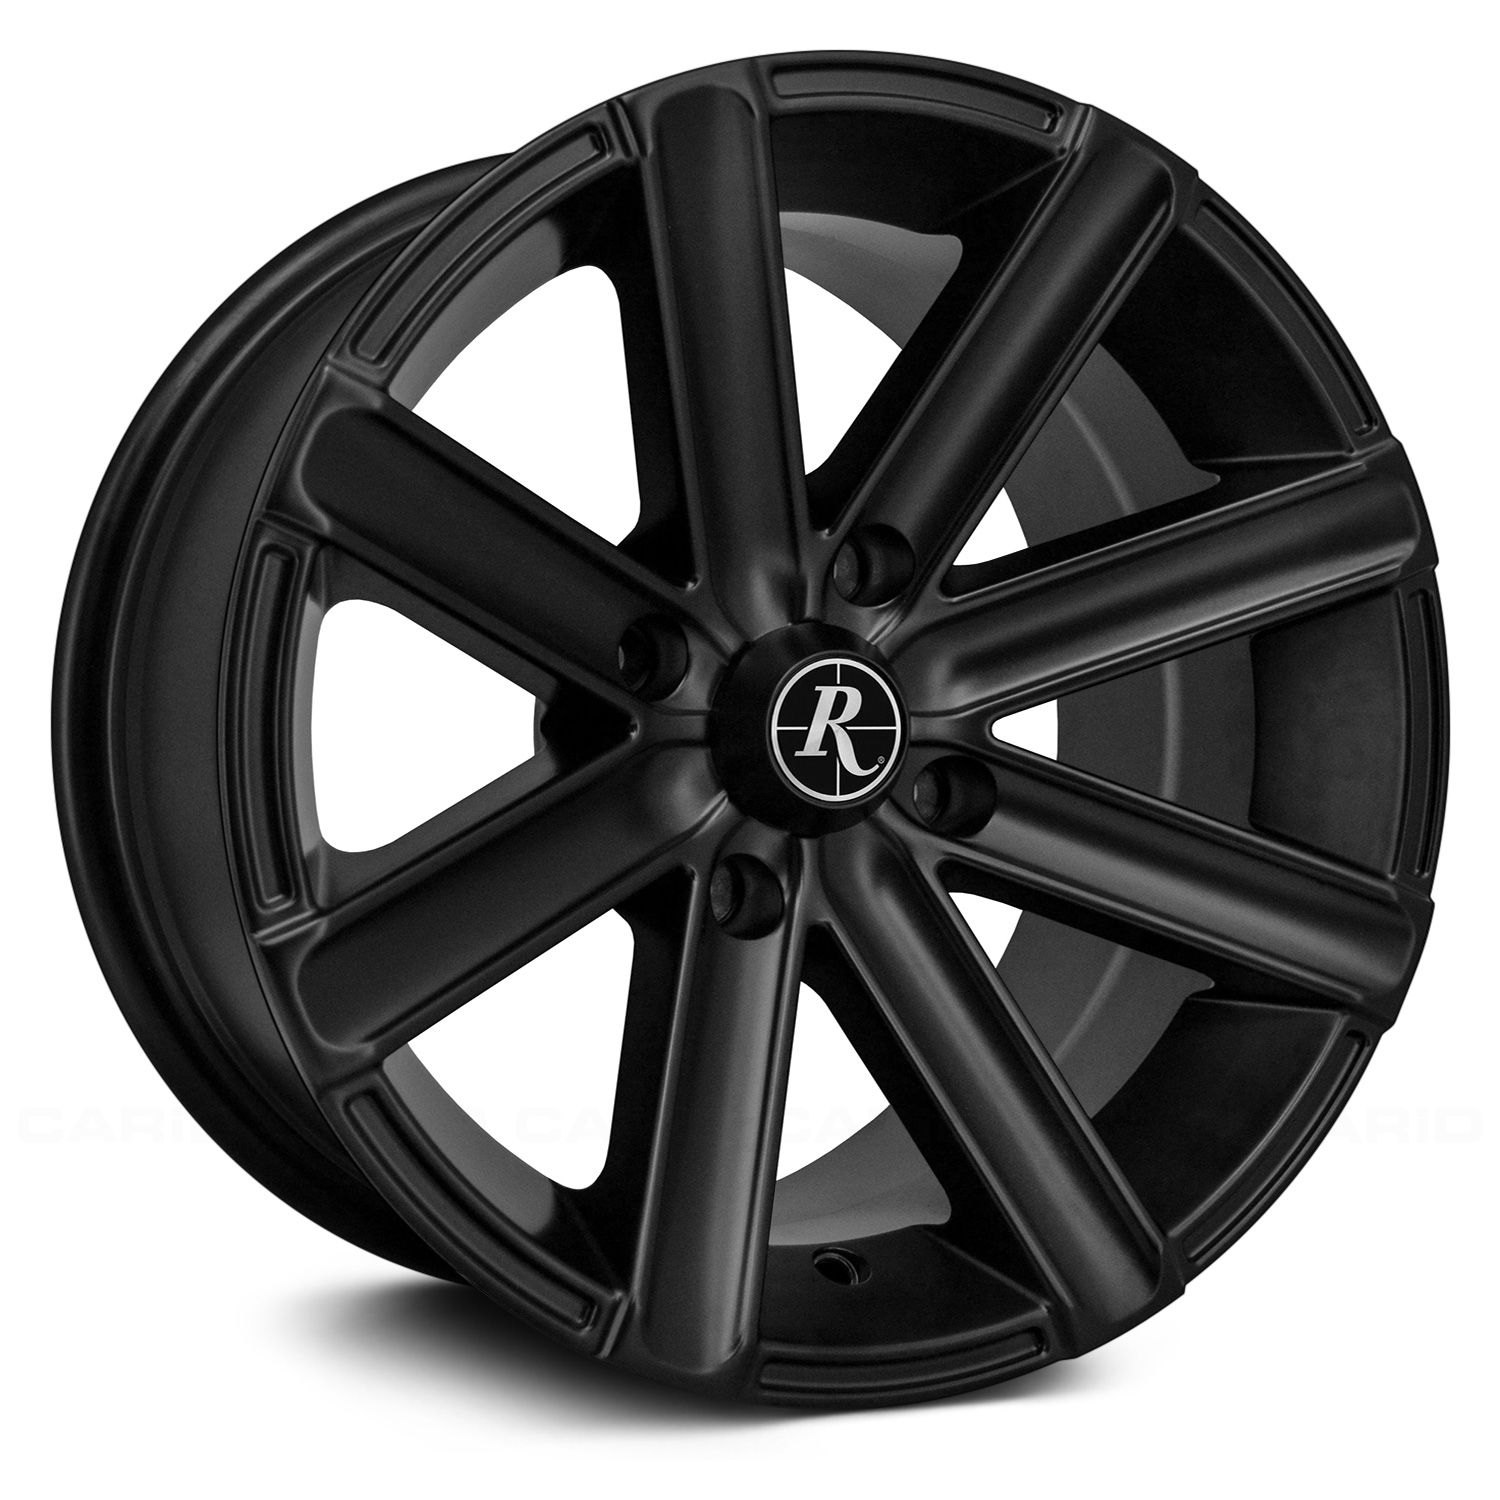 Atv Rims Wheel Covers : Remington freedom atv utv wheels satin black rims